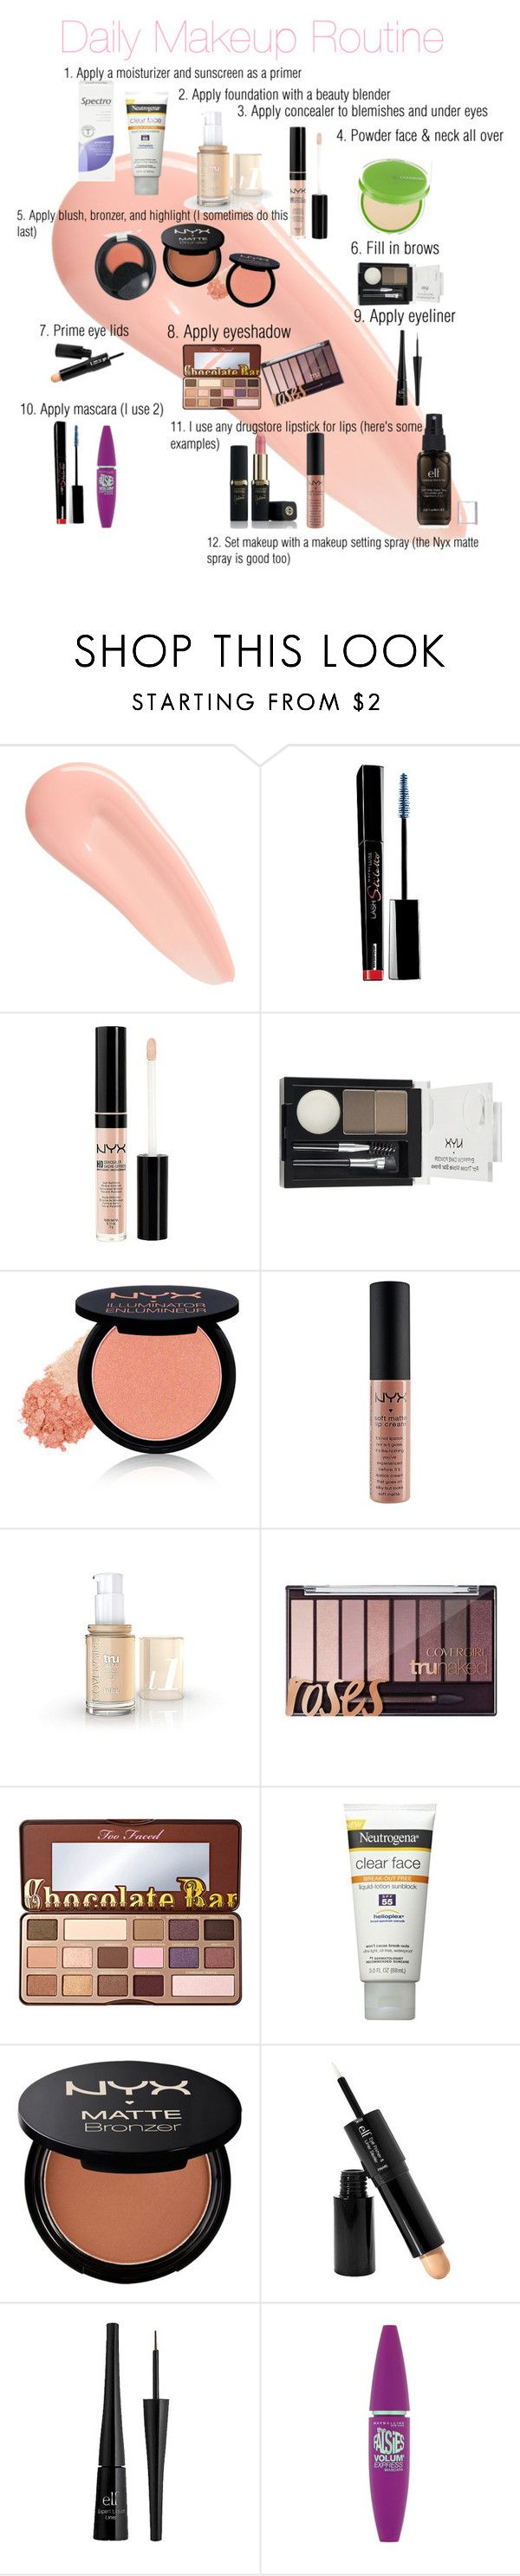 """My Daily Makeup Routine"" by maryf1919 ❤ liked on Polyvore featuring beauty, NARS Cosmetics, Maybelline, NYX, Too Faced Cosmetics, Neutrogena and e.l.f."